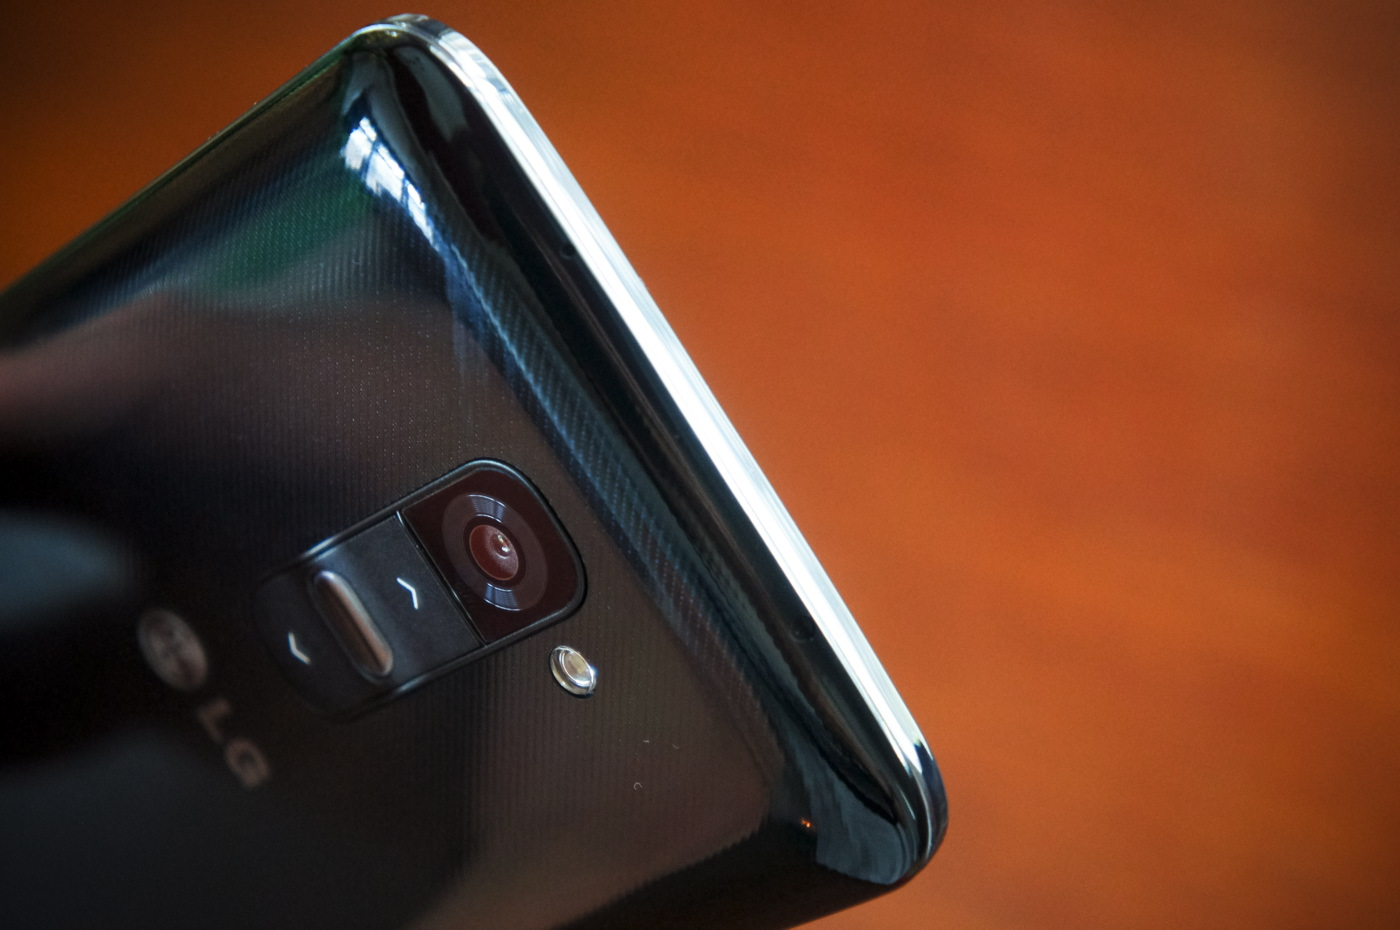 LG G2 Smartphone Review: Snapdragon 800 Powered